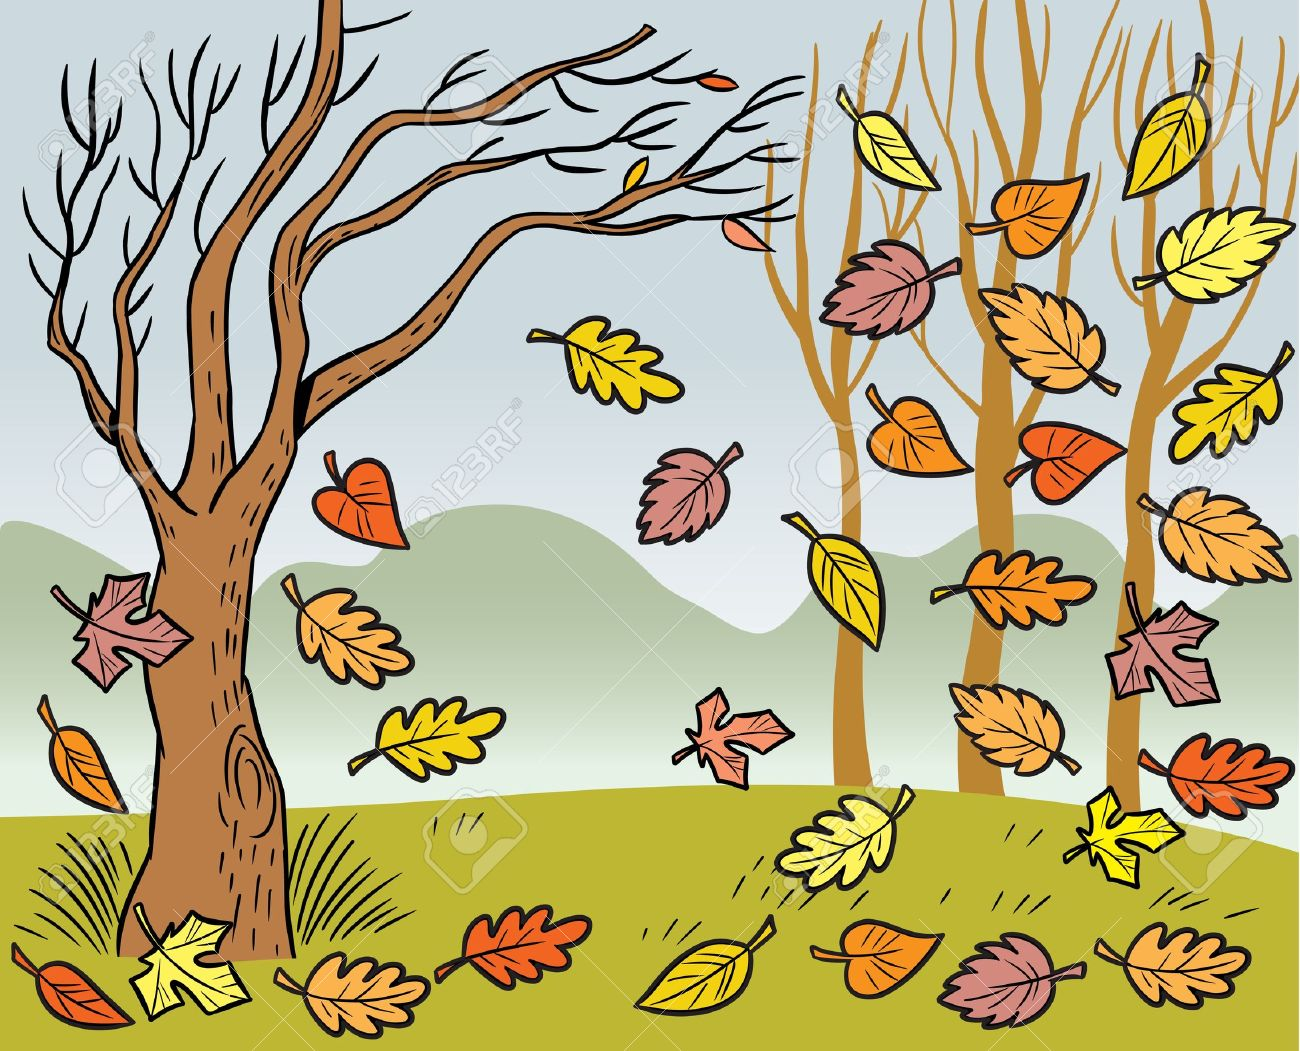 The Illustration Presented In Autumn Landscape And Defoliation.